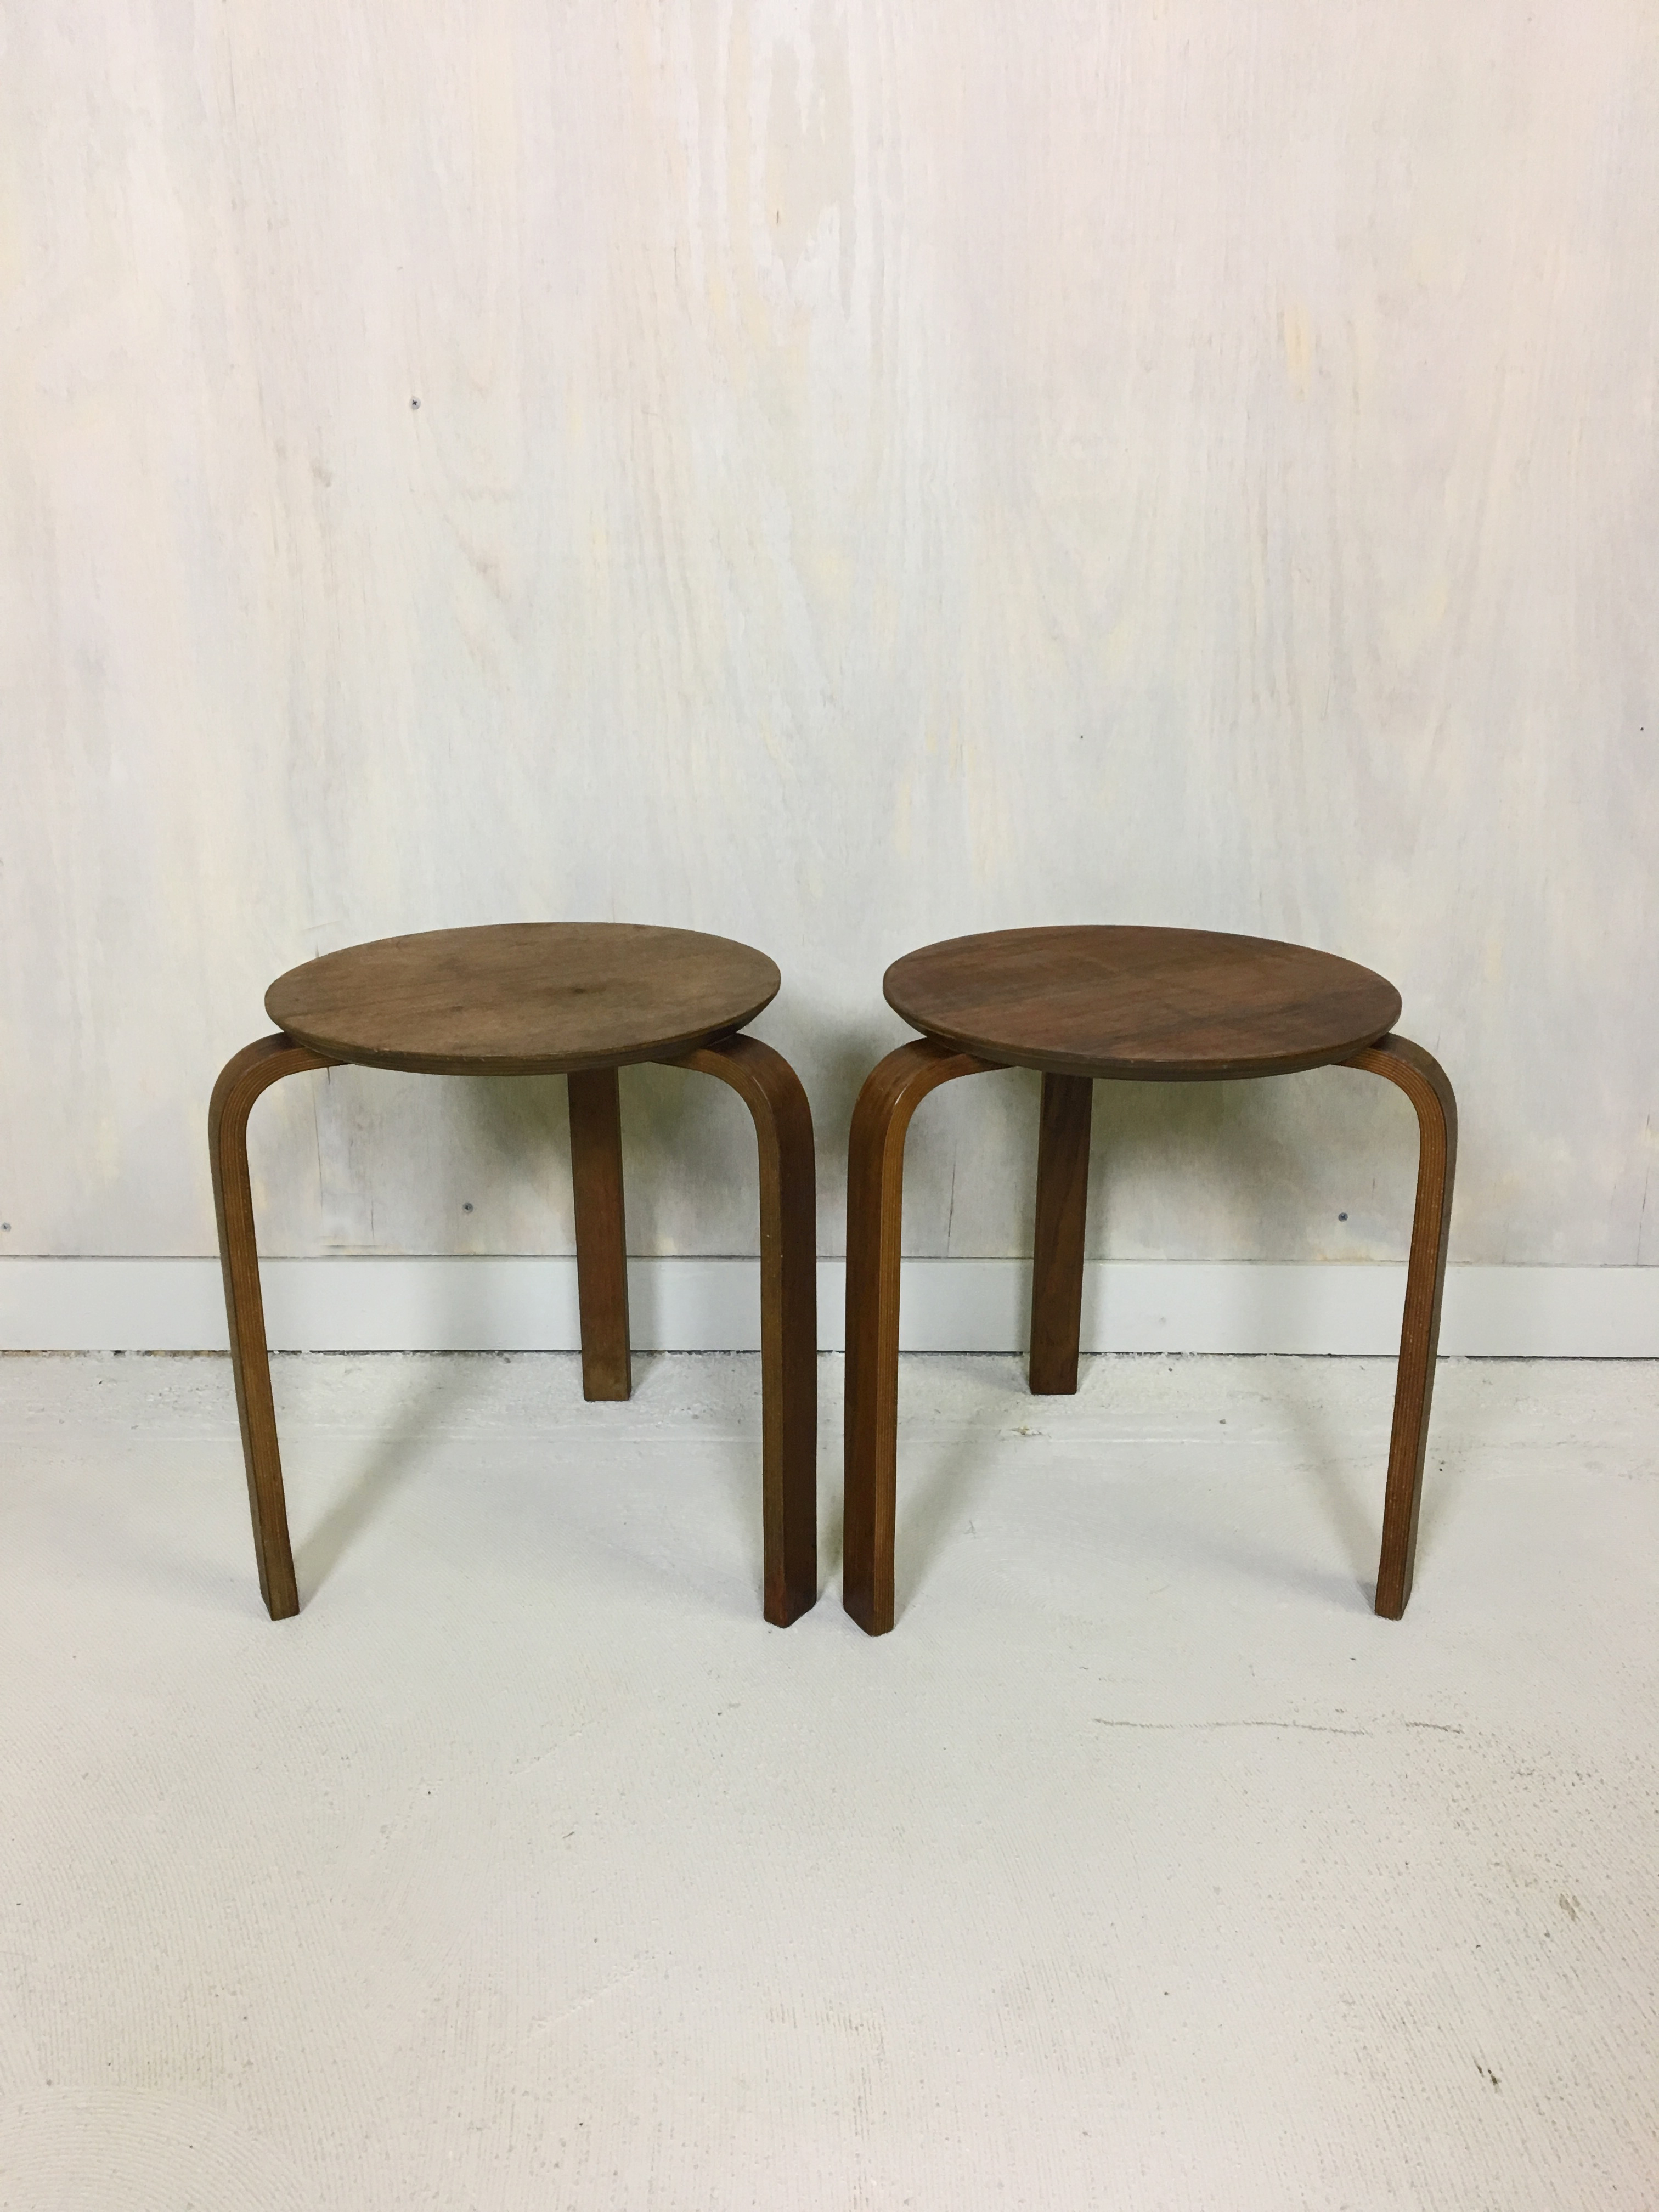 Pair of Alvar Aalto Style Stacking Wood Stools or Side Tables